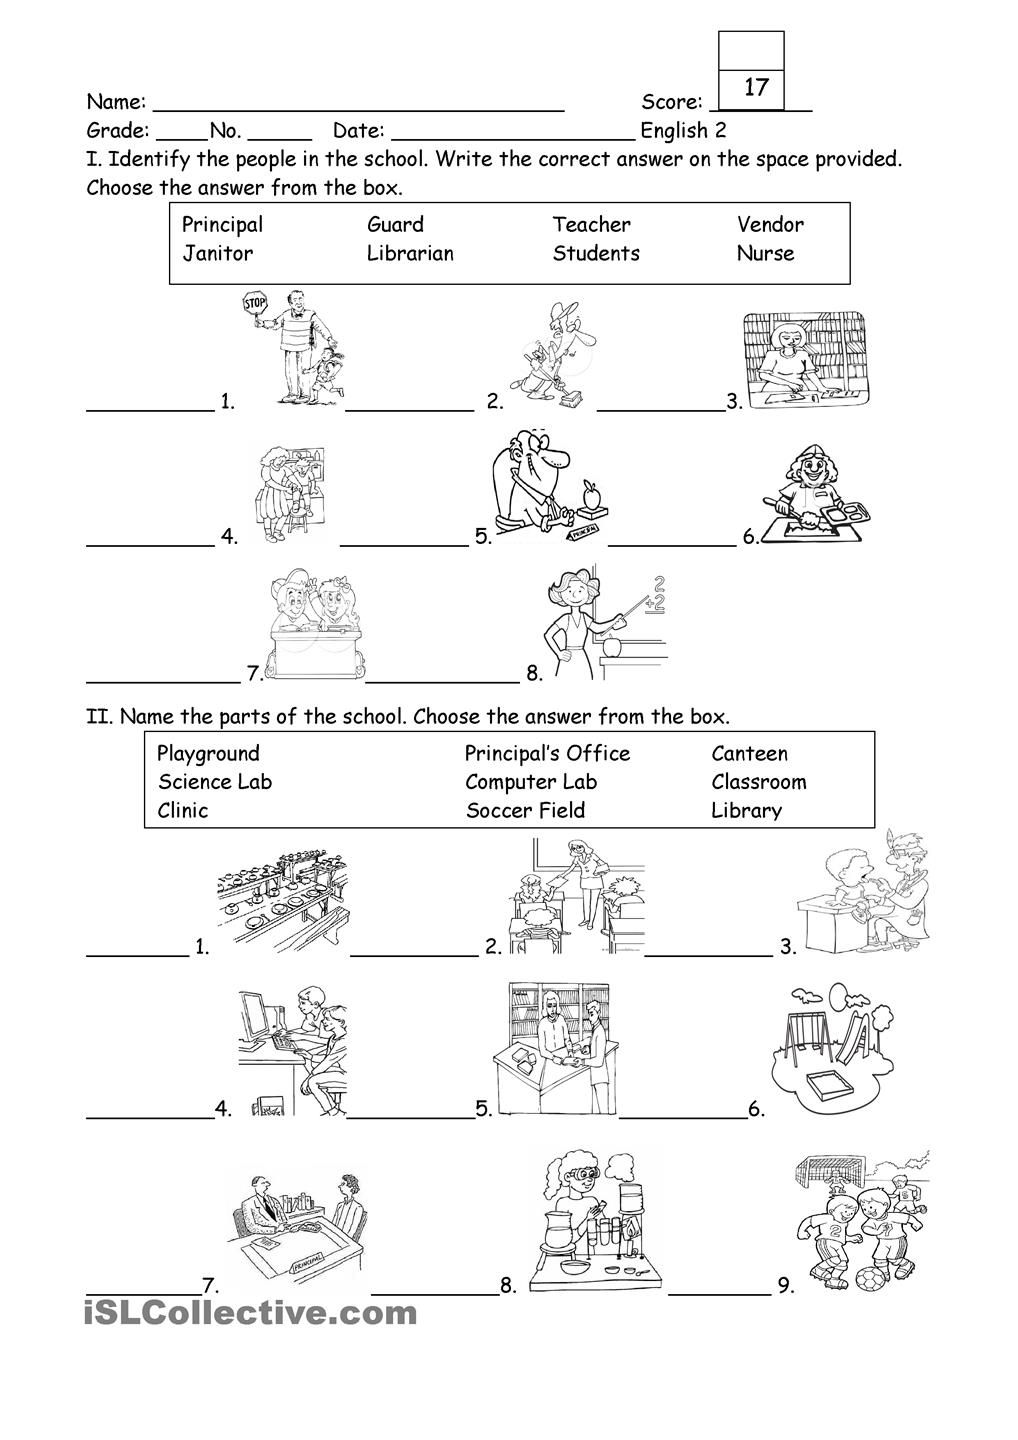 worksheet At The Clinic Worksheet Answers people and part of the school my ideal pinterest worksheet free esl printable worksheets made by teachers